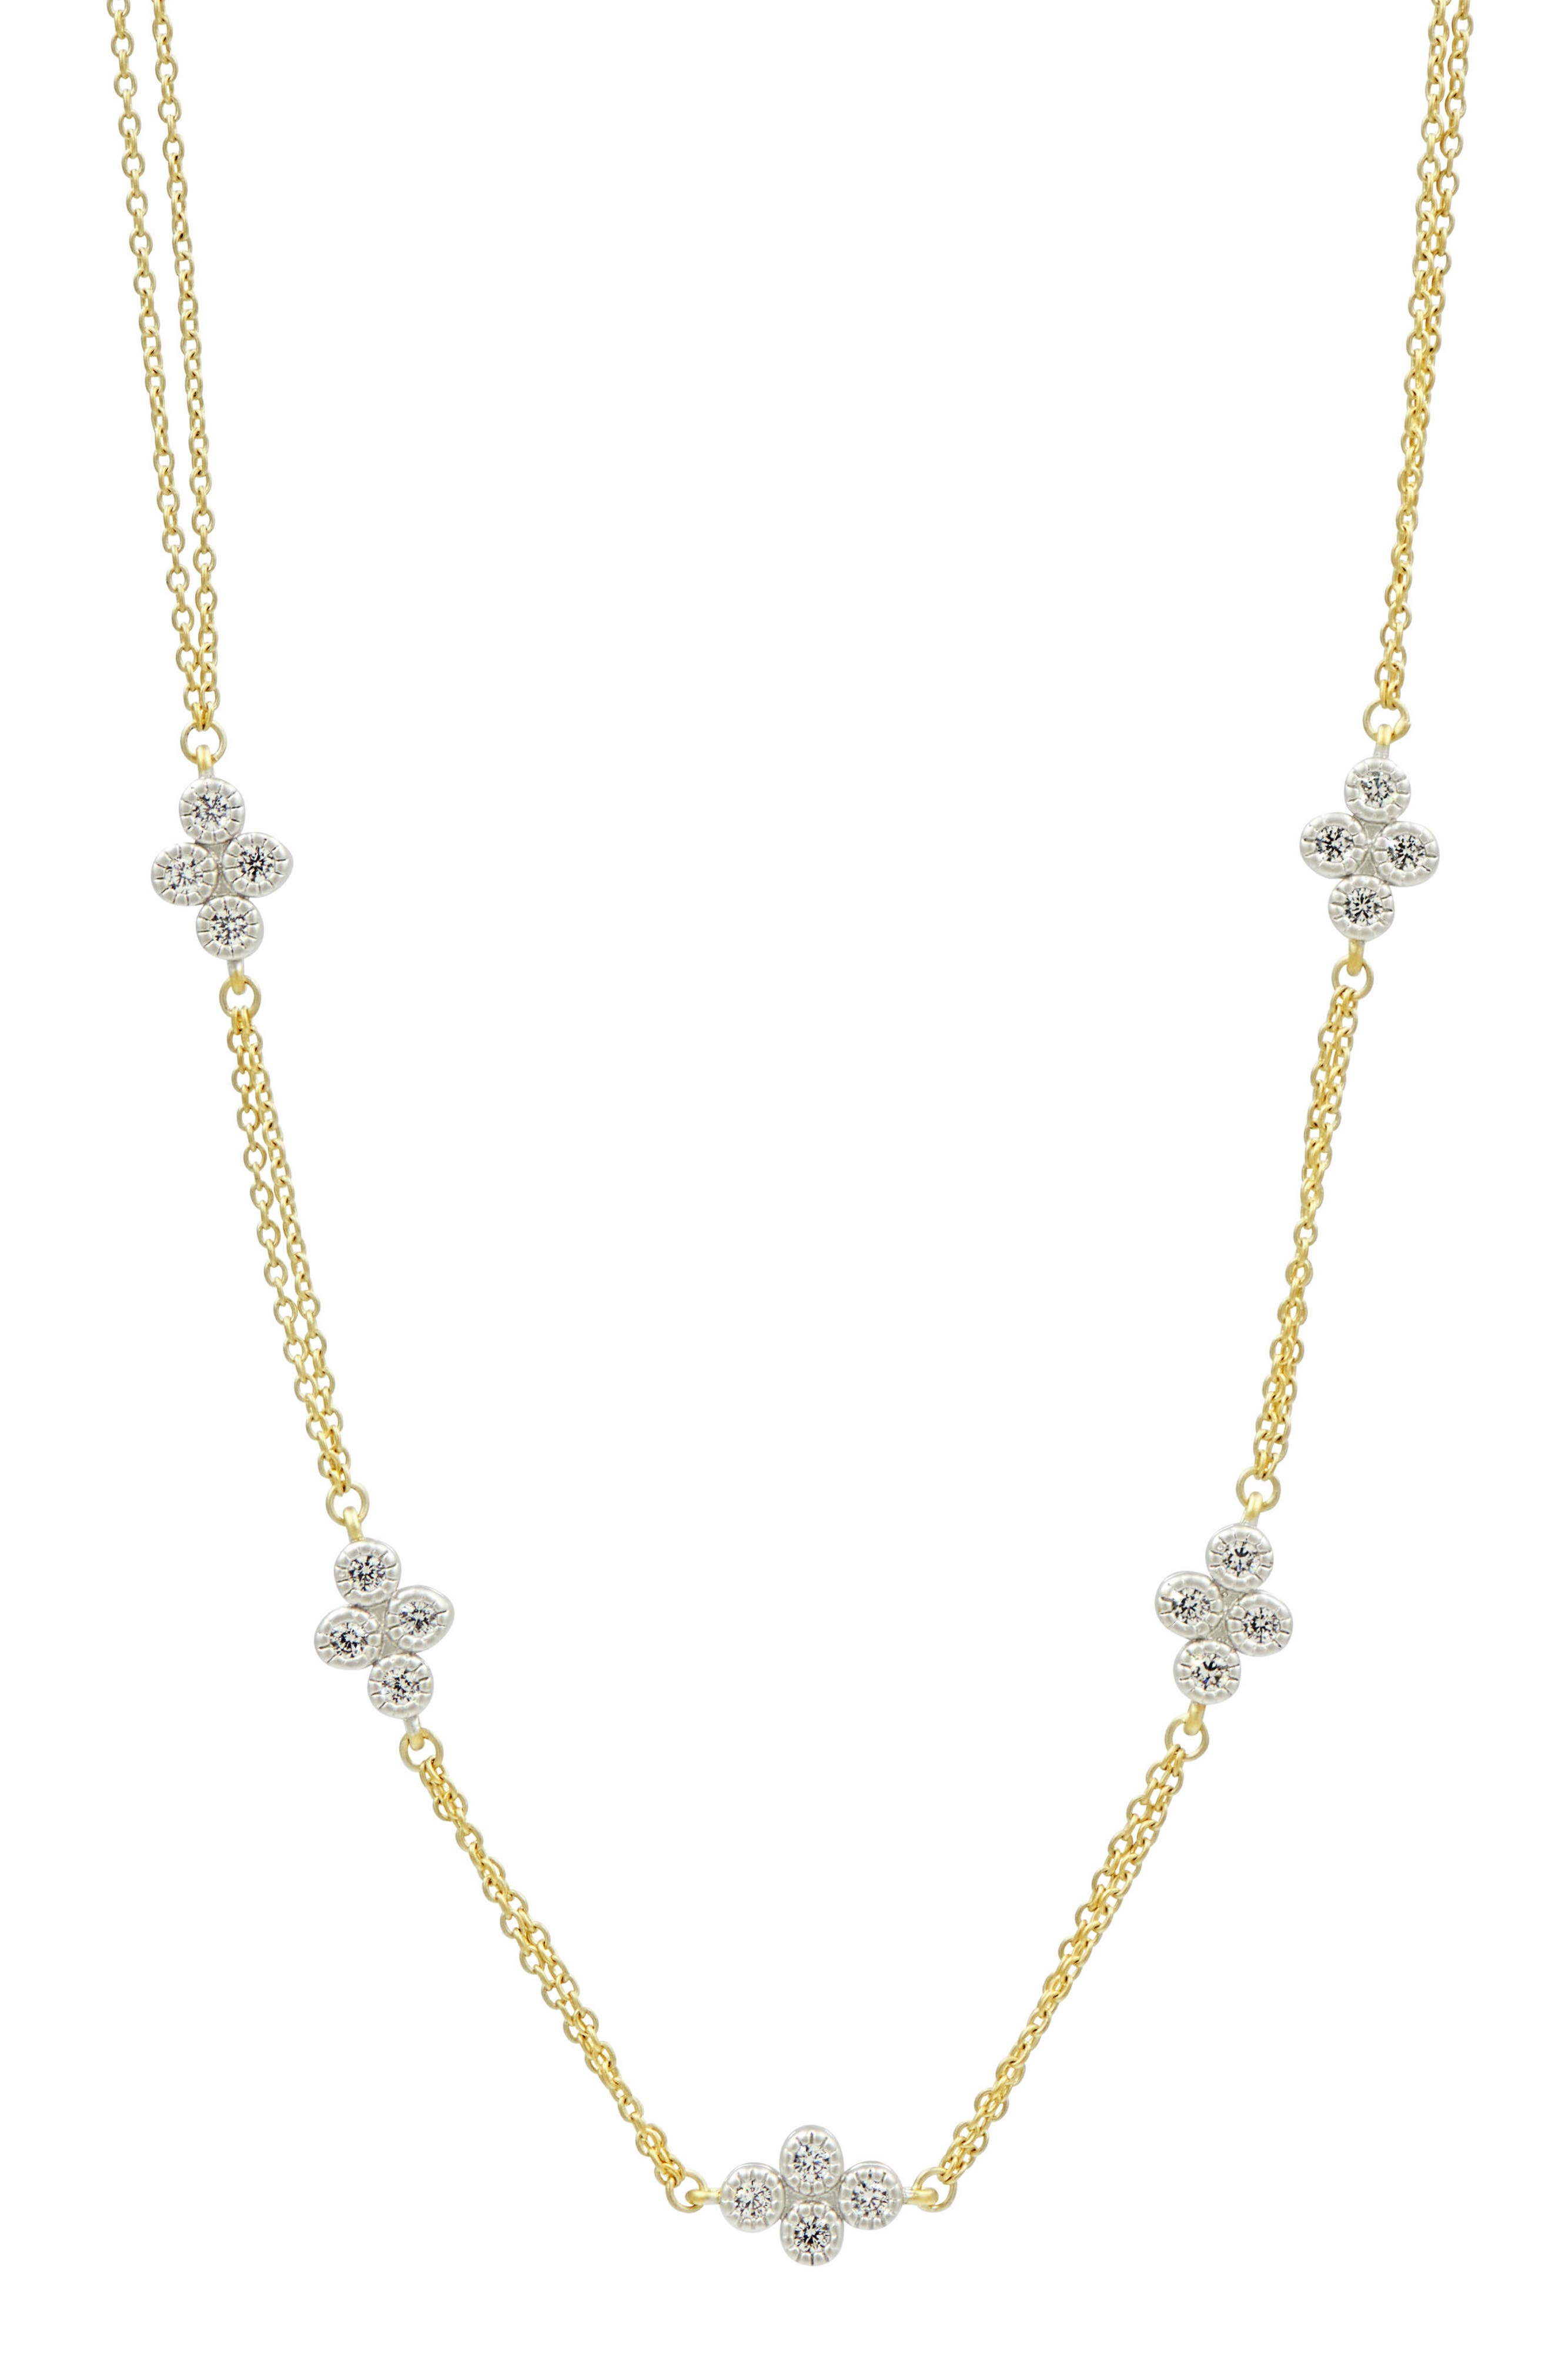 Visionary Fusion Strand Necklace,                         Main,                         color,